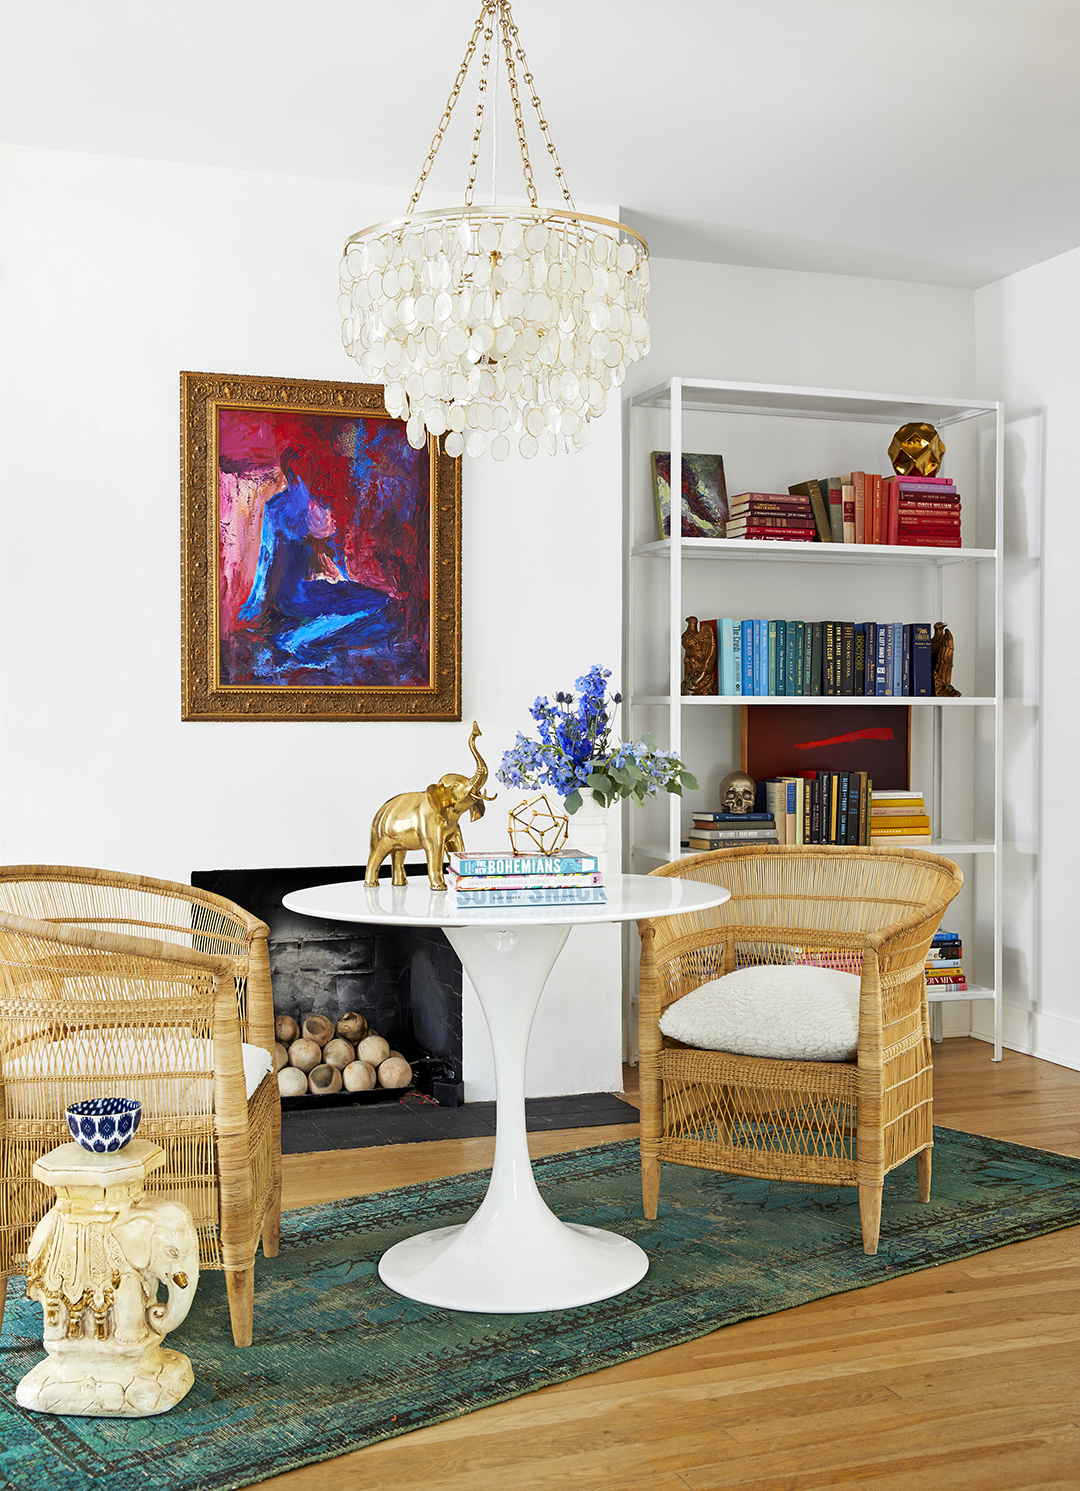 10 Designer Tricks for a Bright and Livable Home